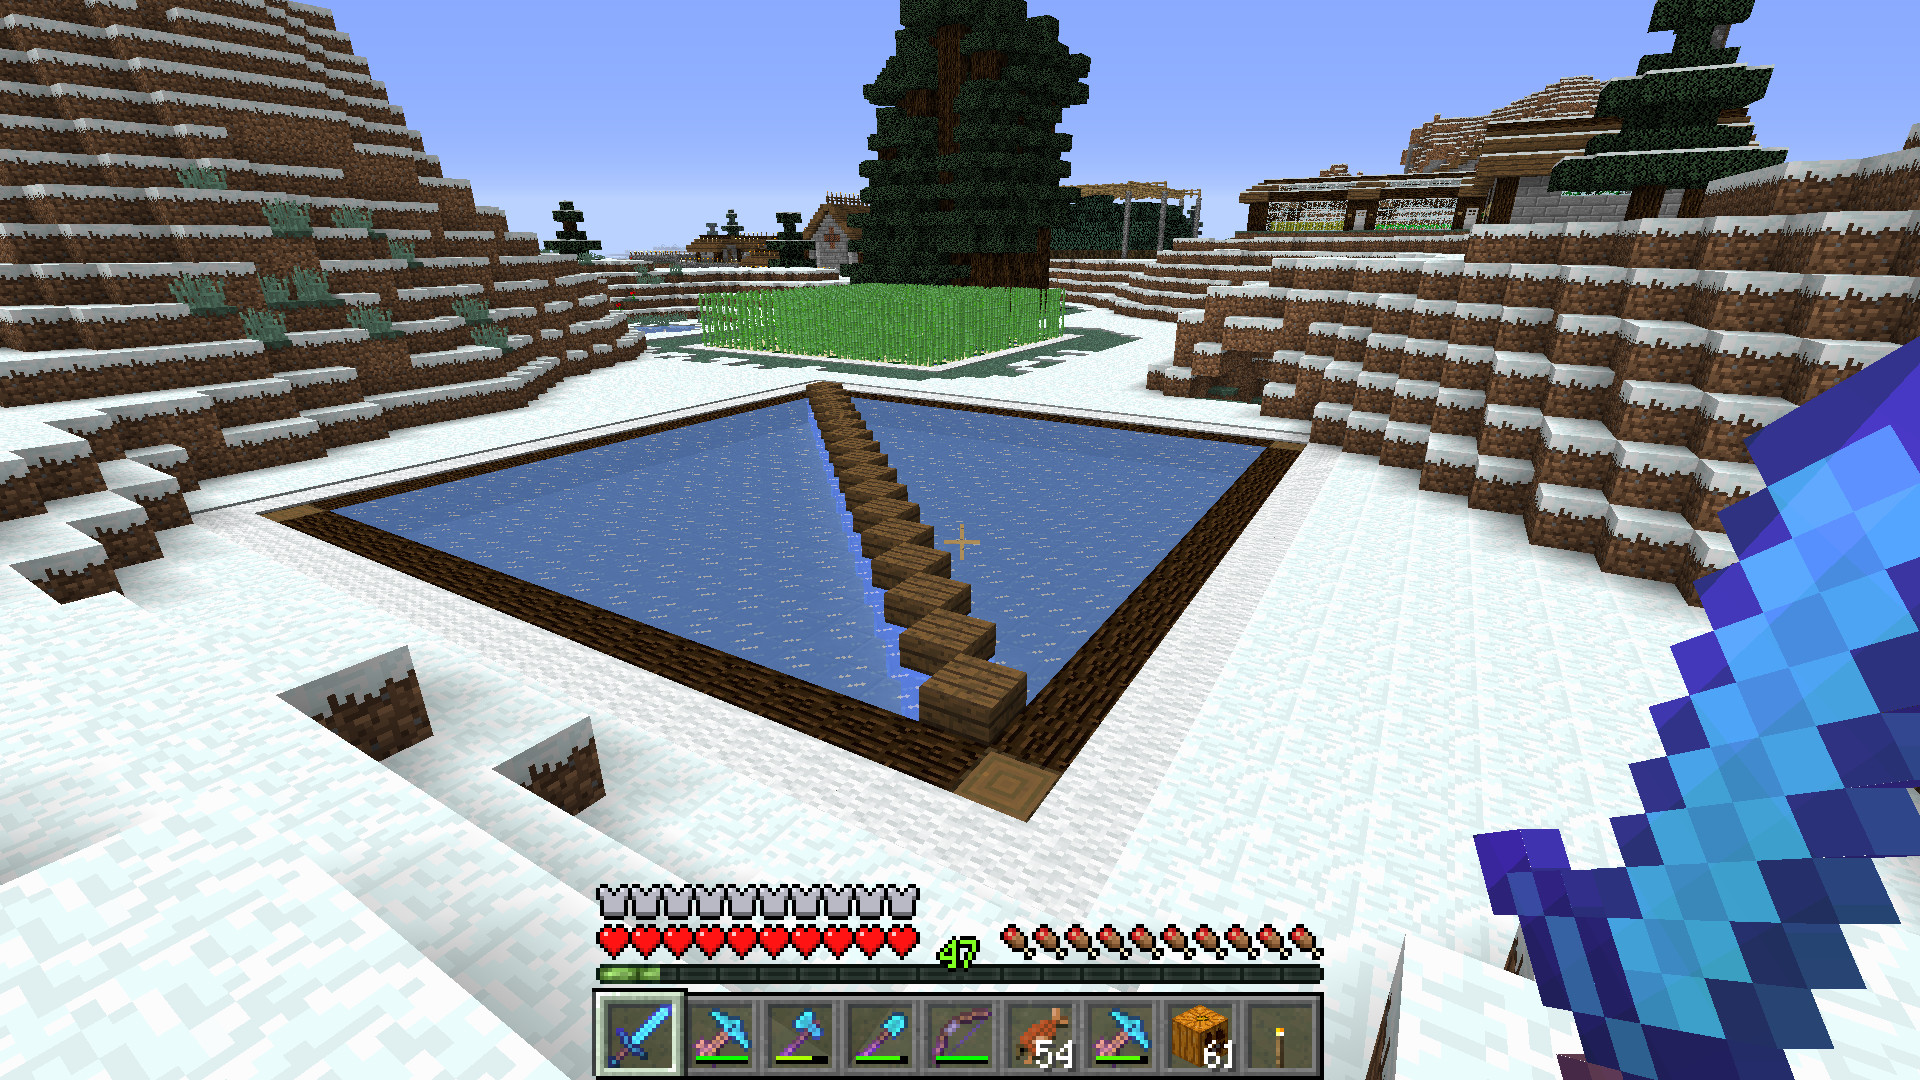 The Diamond Hammer Minecraft With Of Retribution Ogg Cast Monostable Circuit Day 745 15 January 2002 You May Be Wondering Why Ive Built An Ice Tray In Land Always Winter When Rivers Will Full